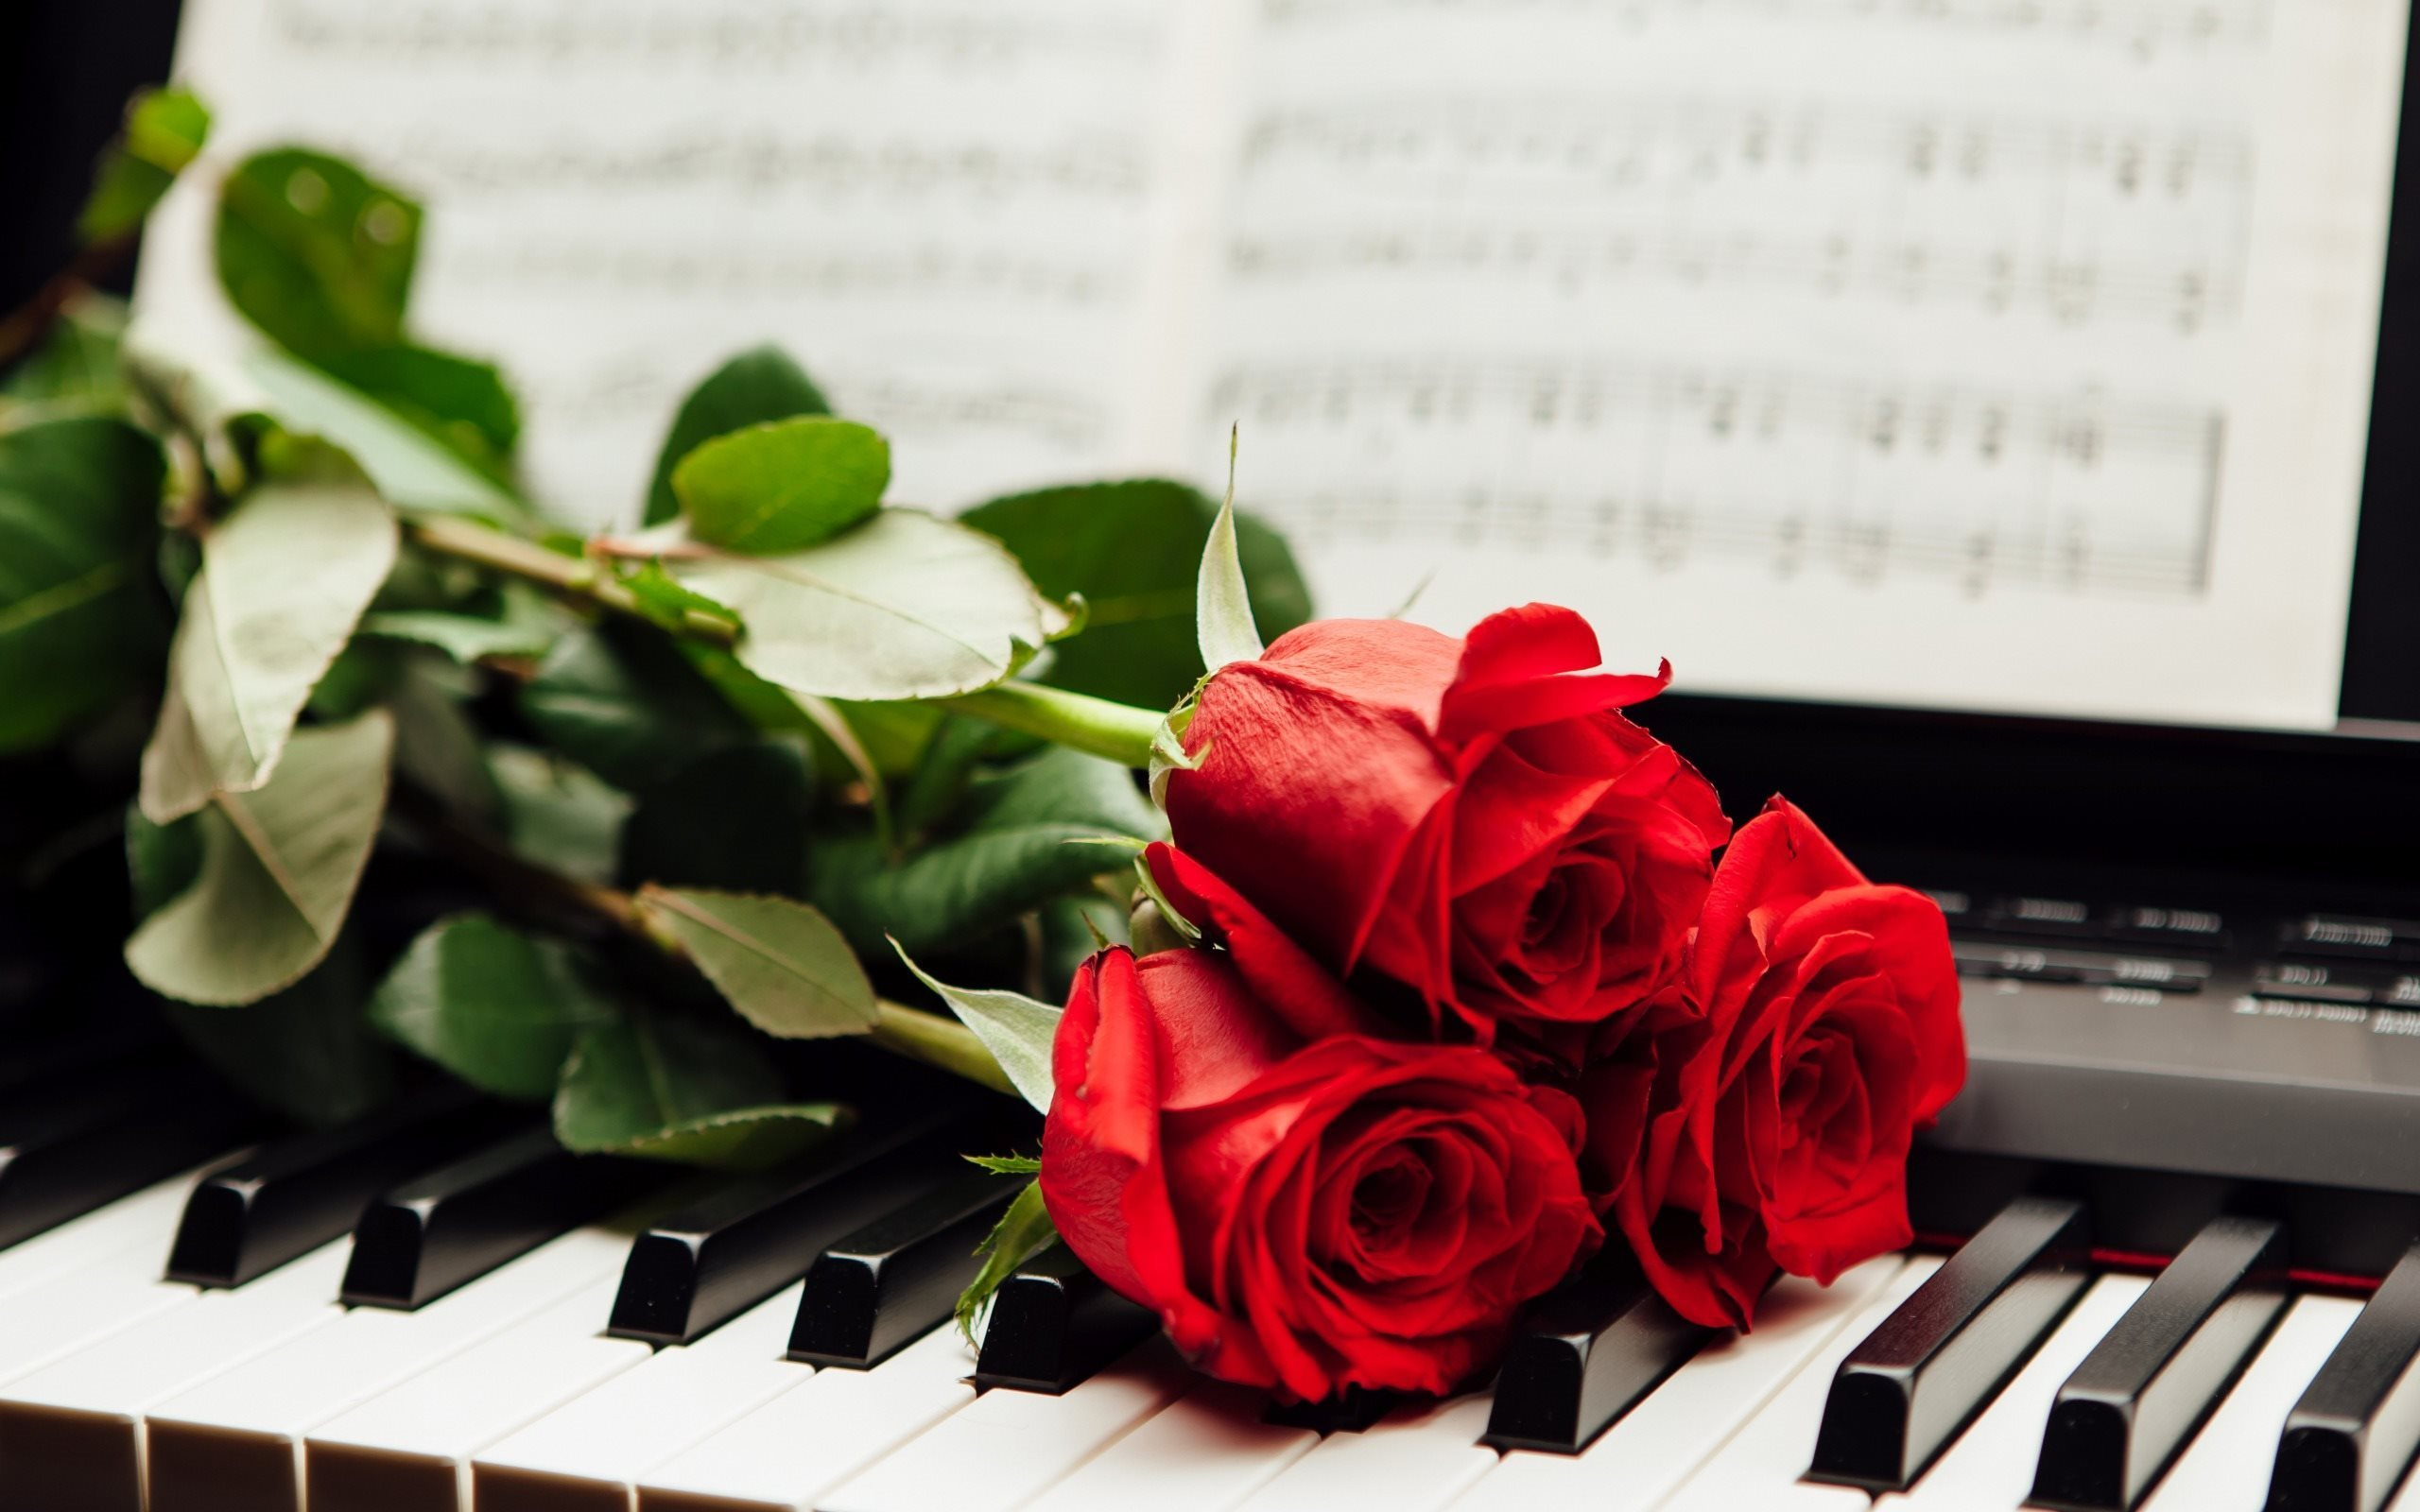 Download Wallpapers Piano Piano Keys Flowers Red Roses For Desktop With Resolution 2560x1600 High Quality Hd Pictures Wallpapers